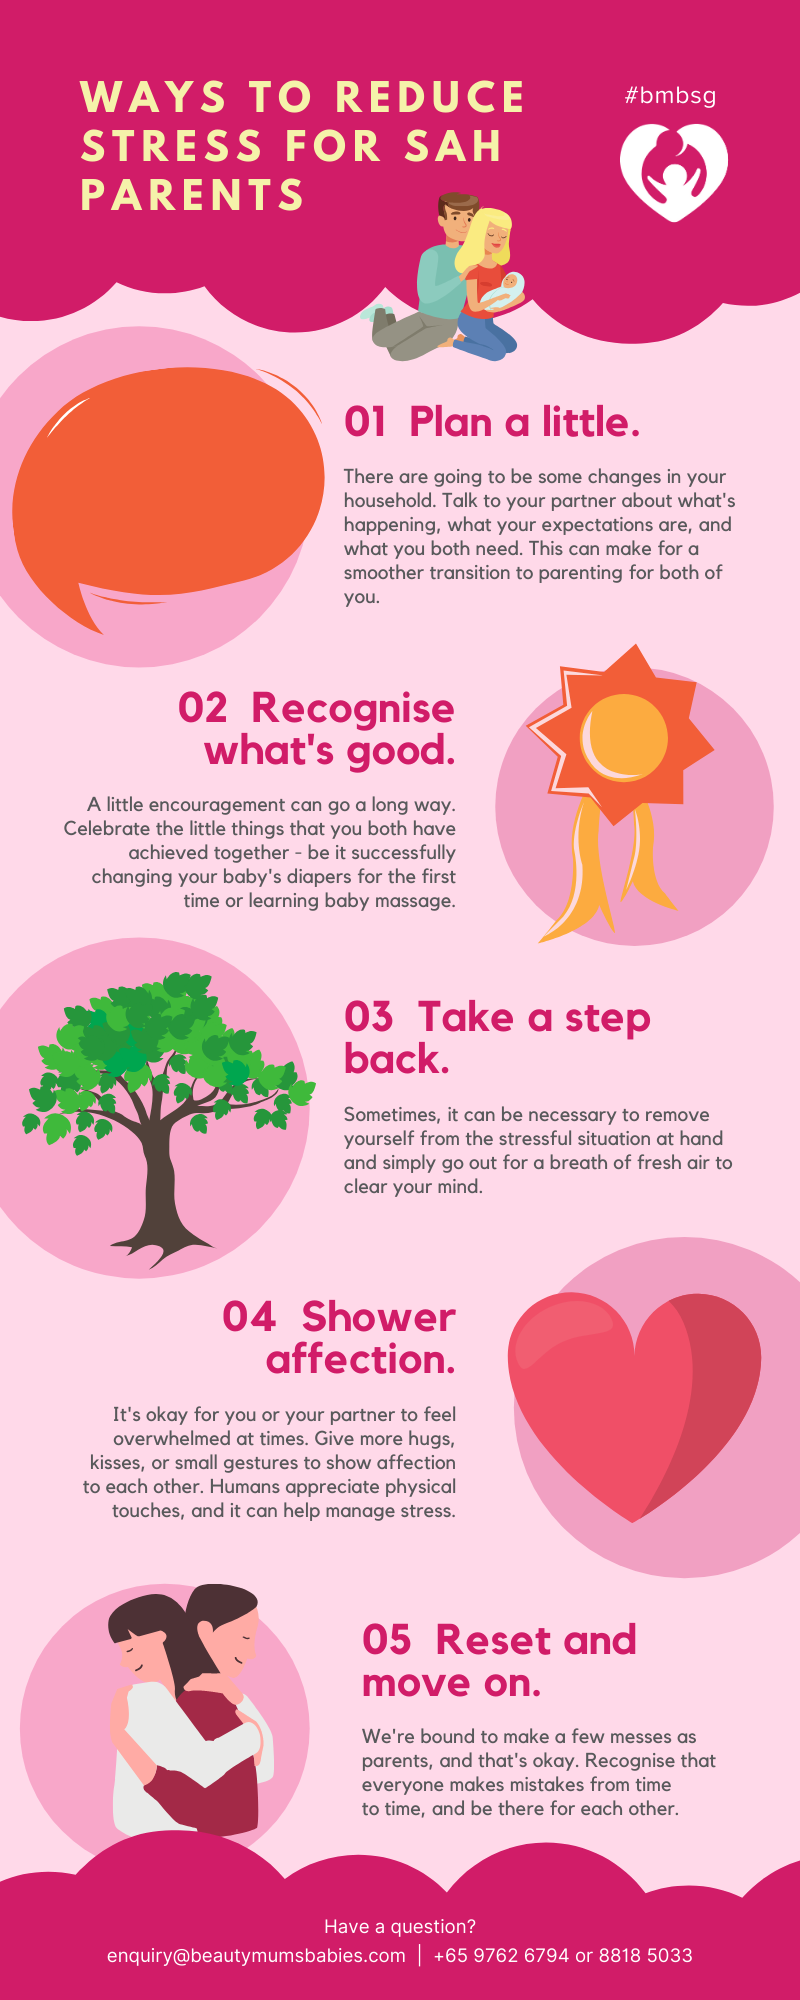 [INFOGRAPHIC] Ways To Reduce Stress for Stay-at-home Parents